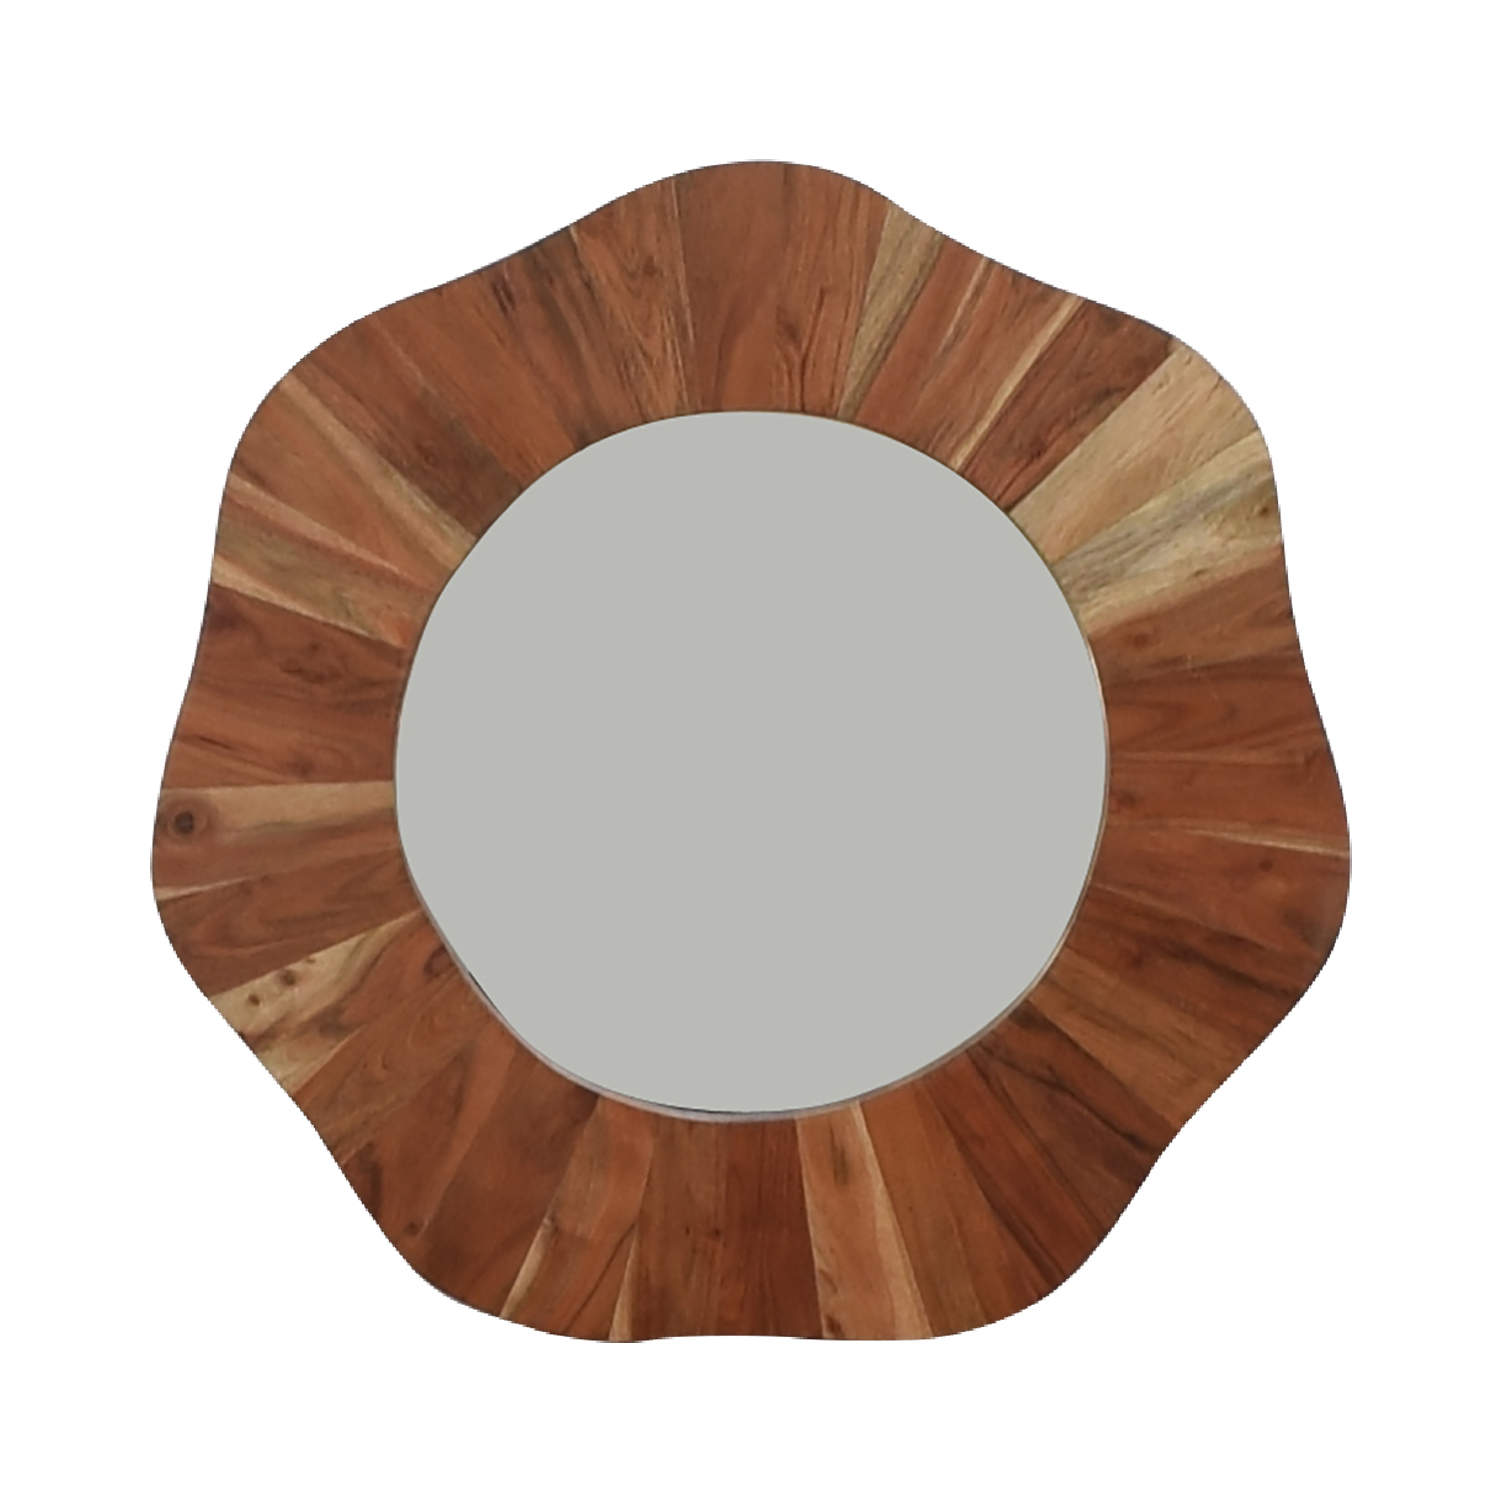 Rustic Round Wood Wall Mirror